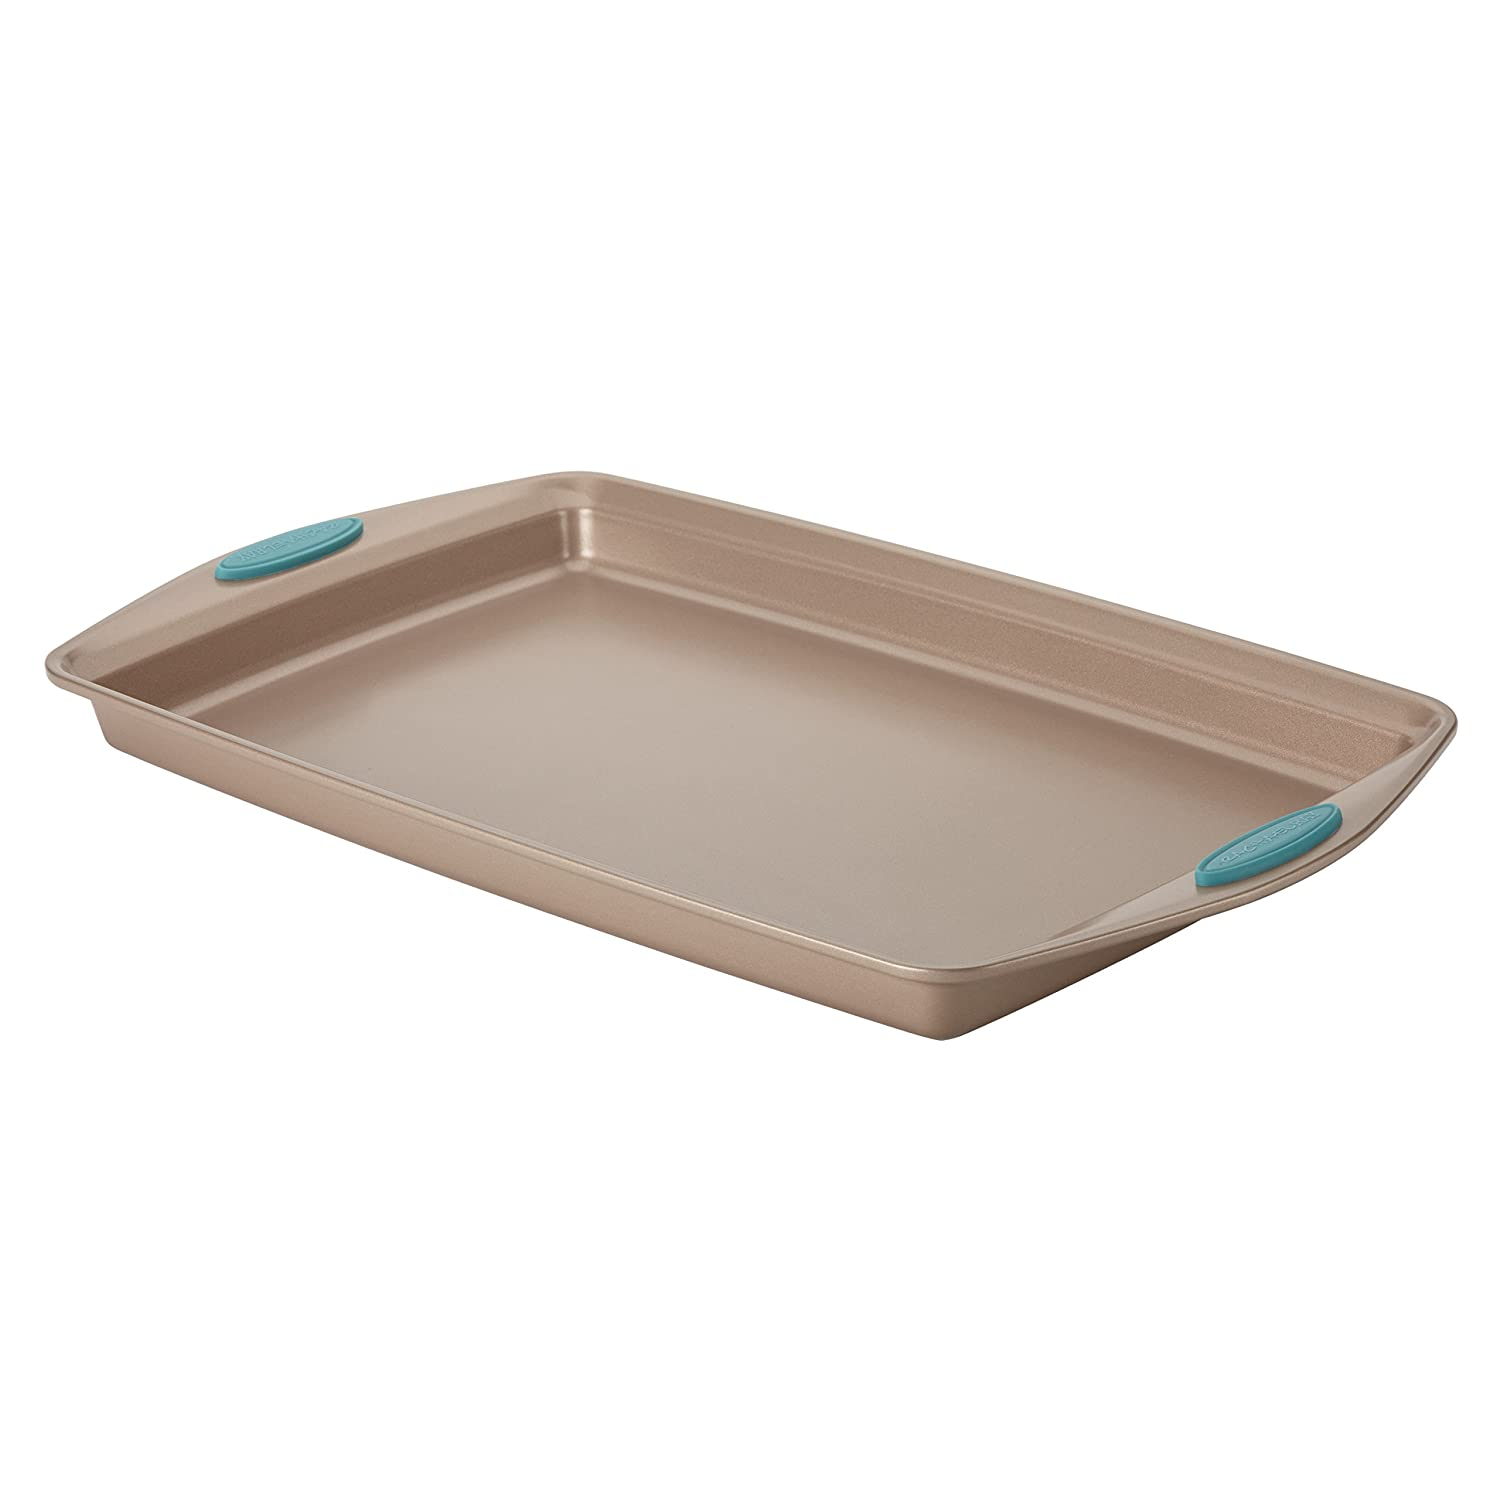 Rachael Ray Cucina Nonstick Bakeware Baking Pan / Cookie Sheet, 11-Inch x 17-Inch, Latte Brown, Agave Blue Handle Grips 46683